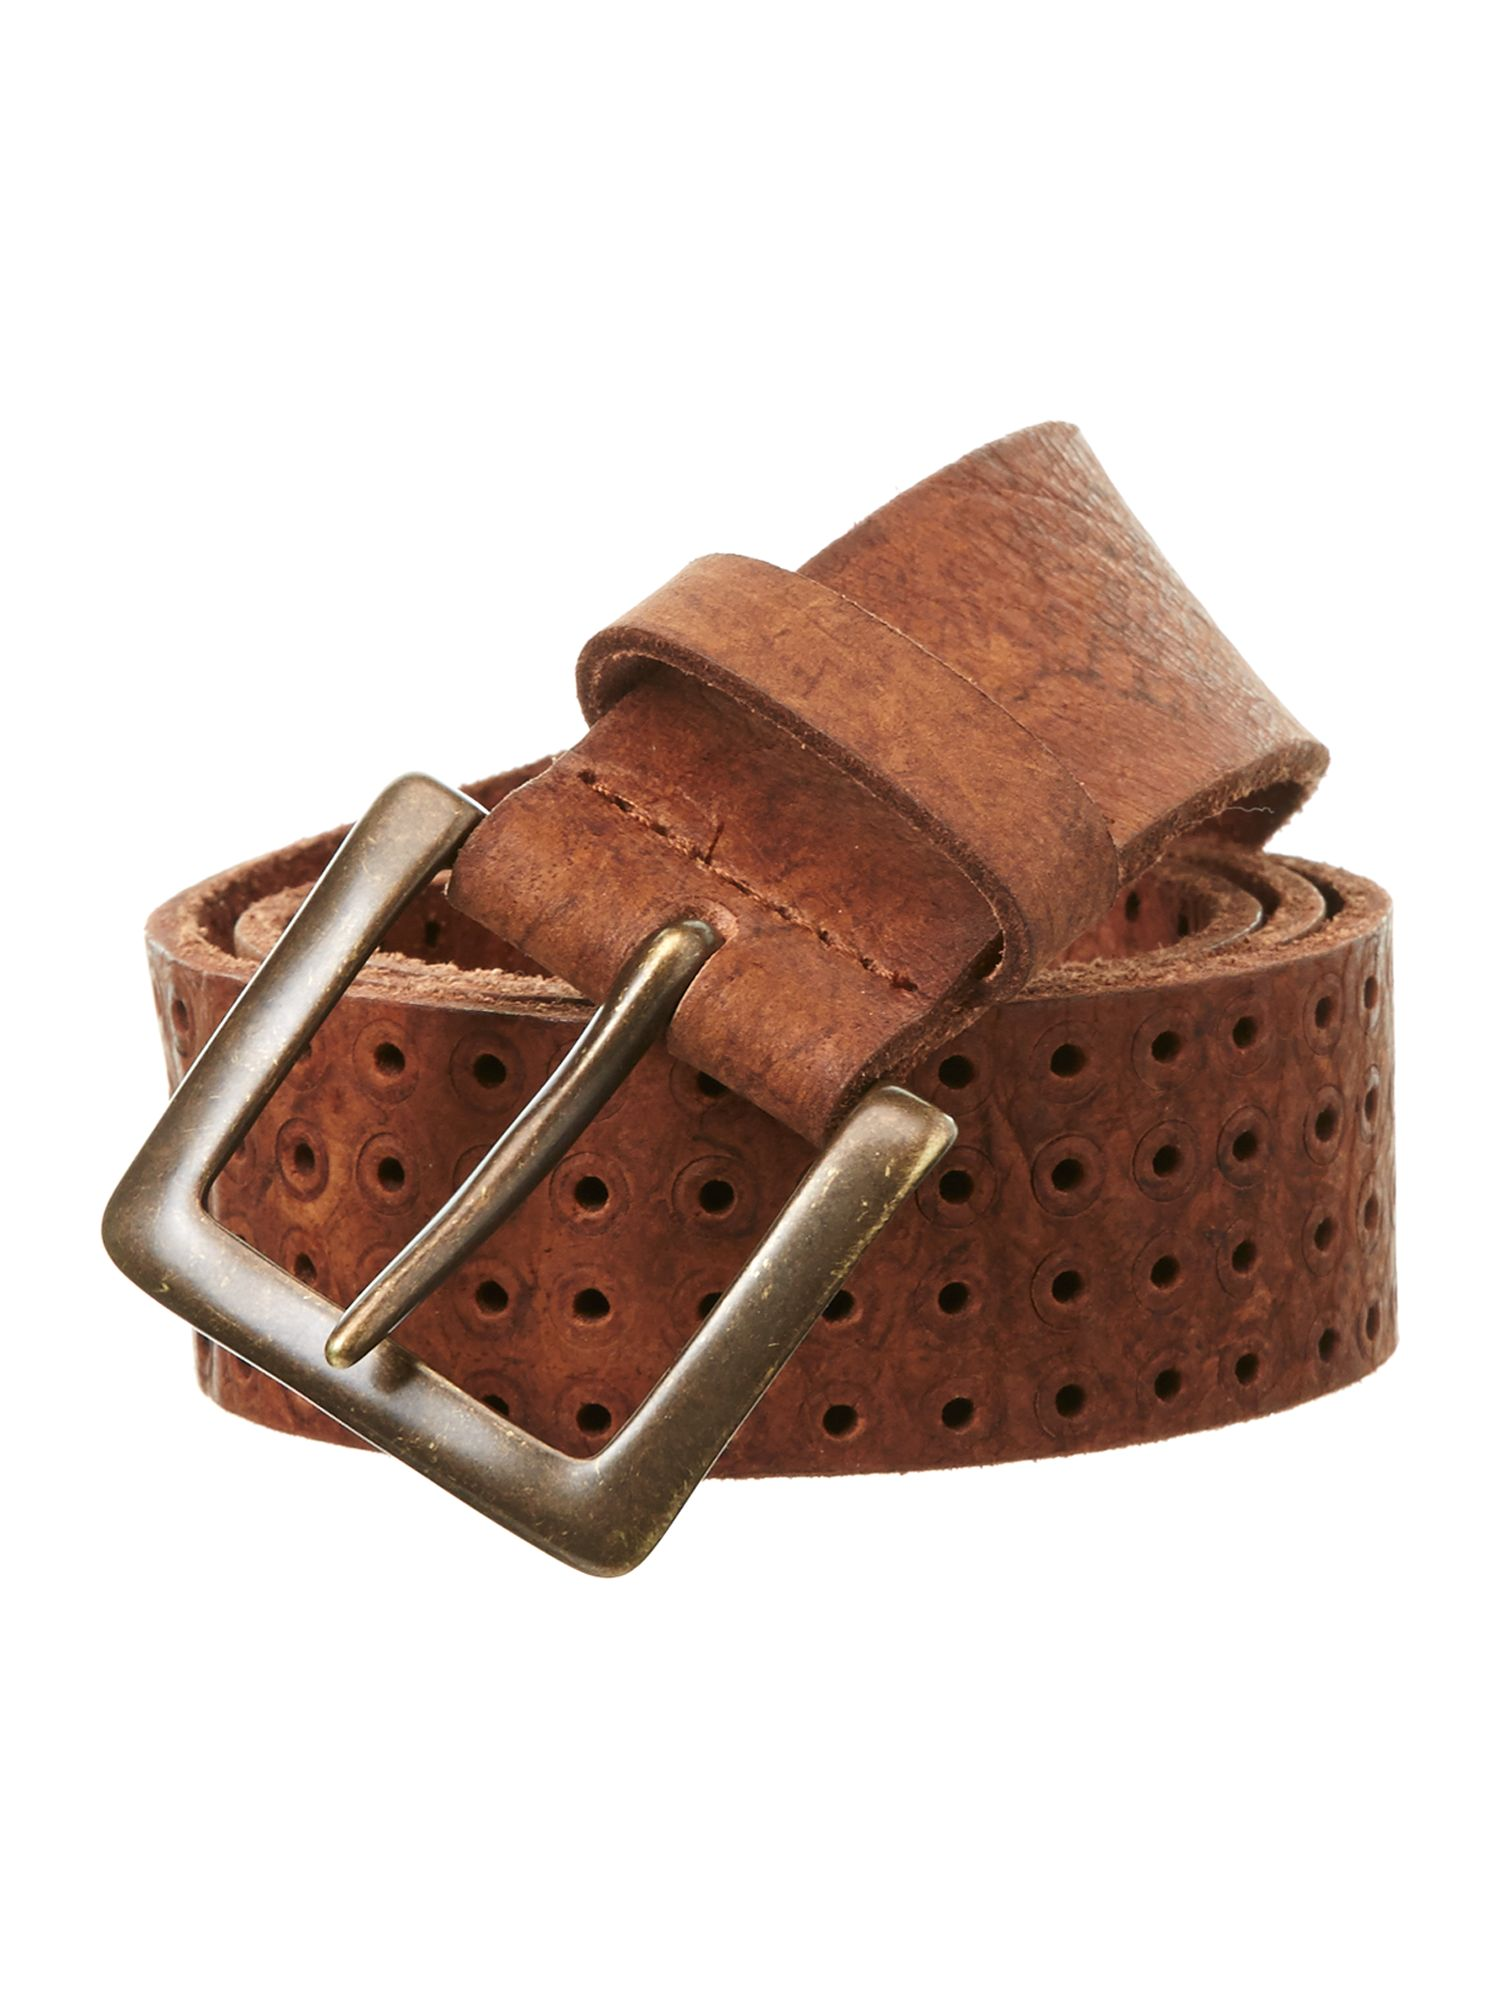 Oversized perforated belt